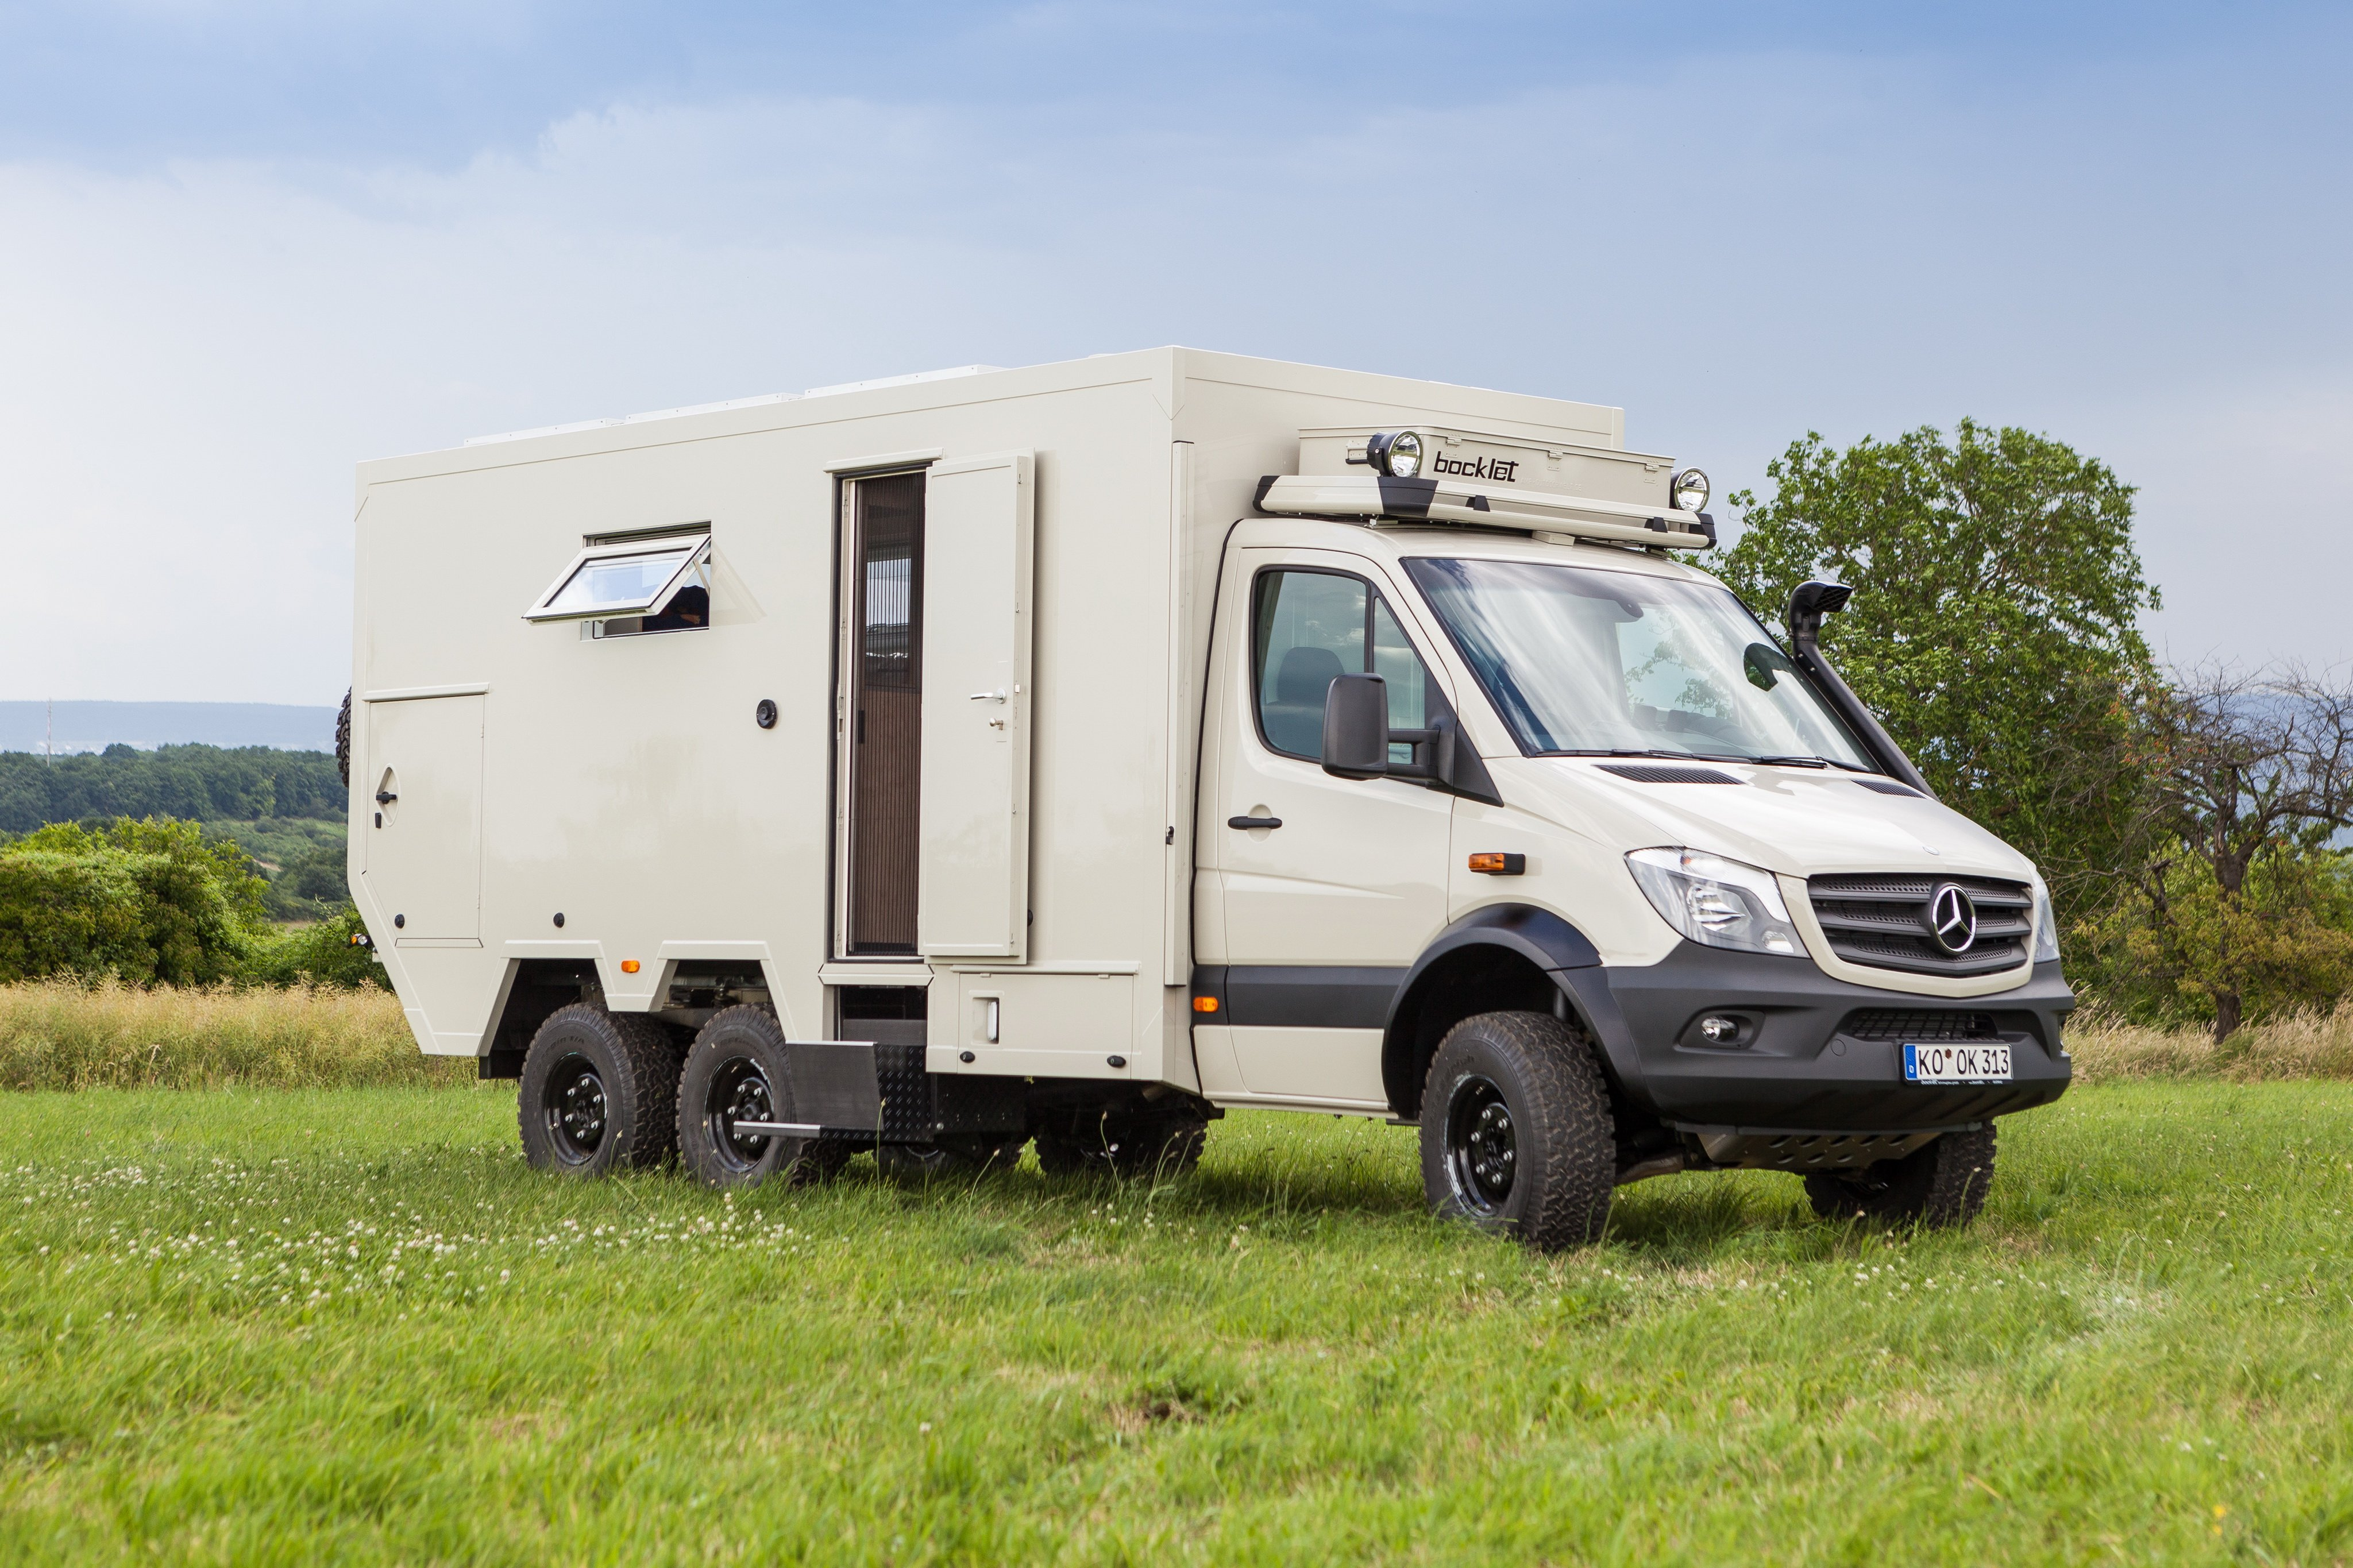 Model Source More Photos Truck Yeah Via Jalopnik Awesome Mercedes Off Road Camper Interior